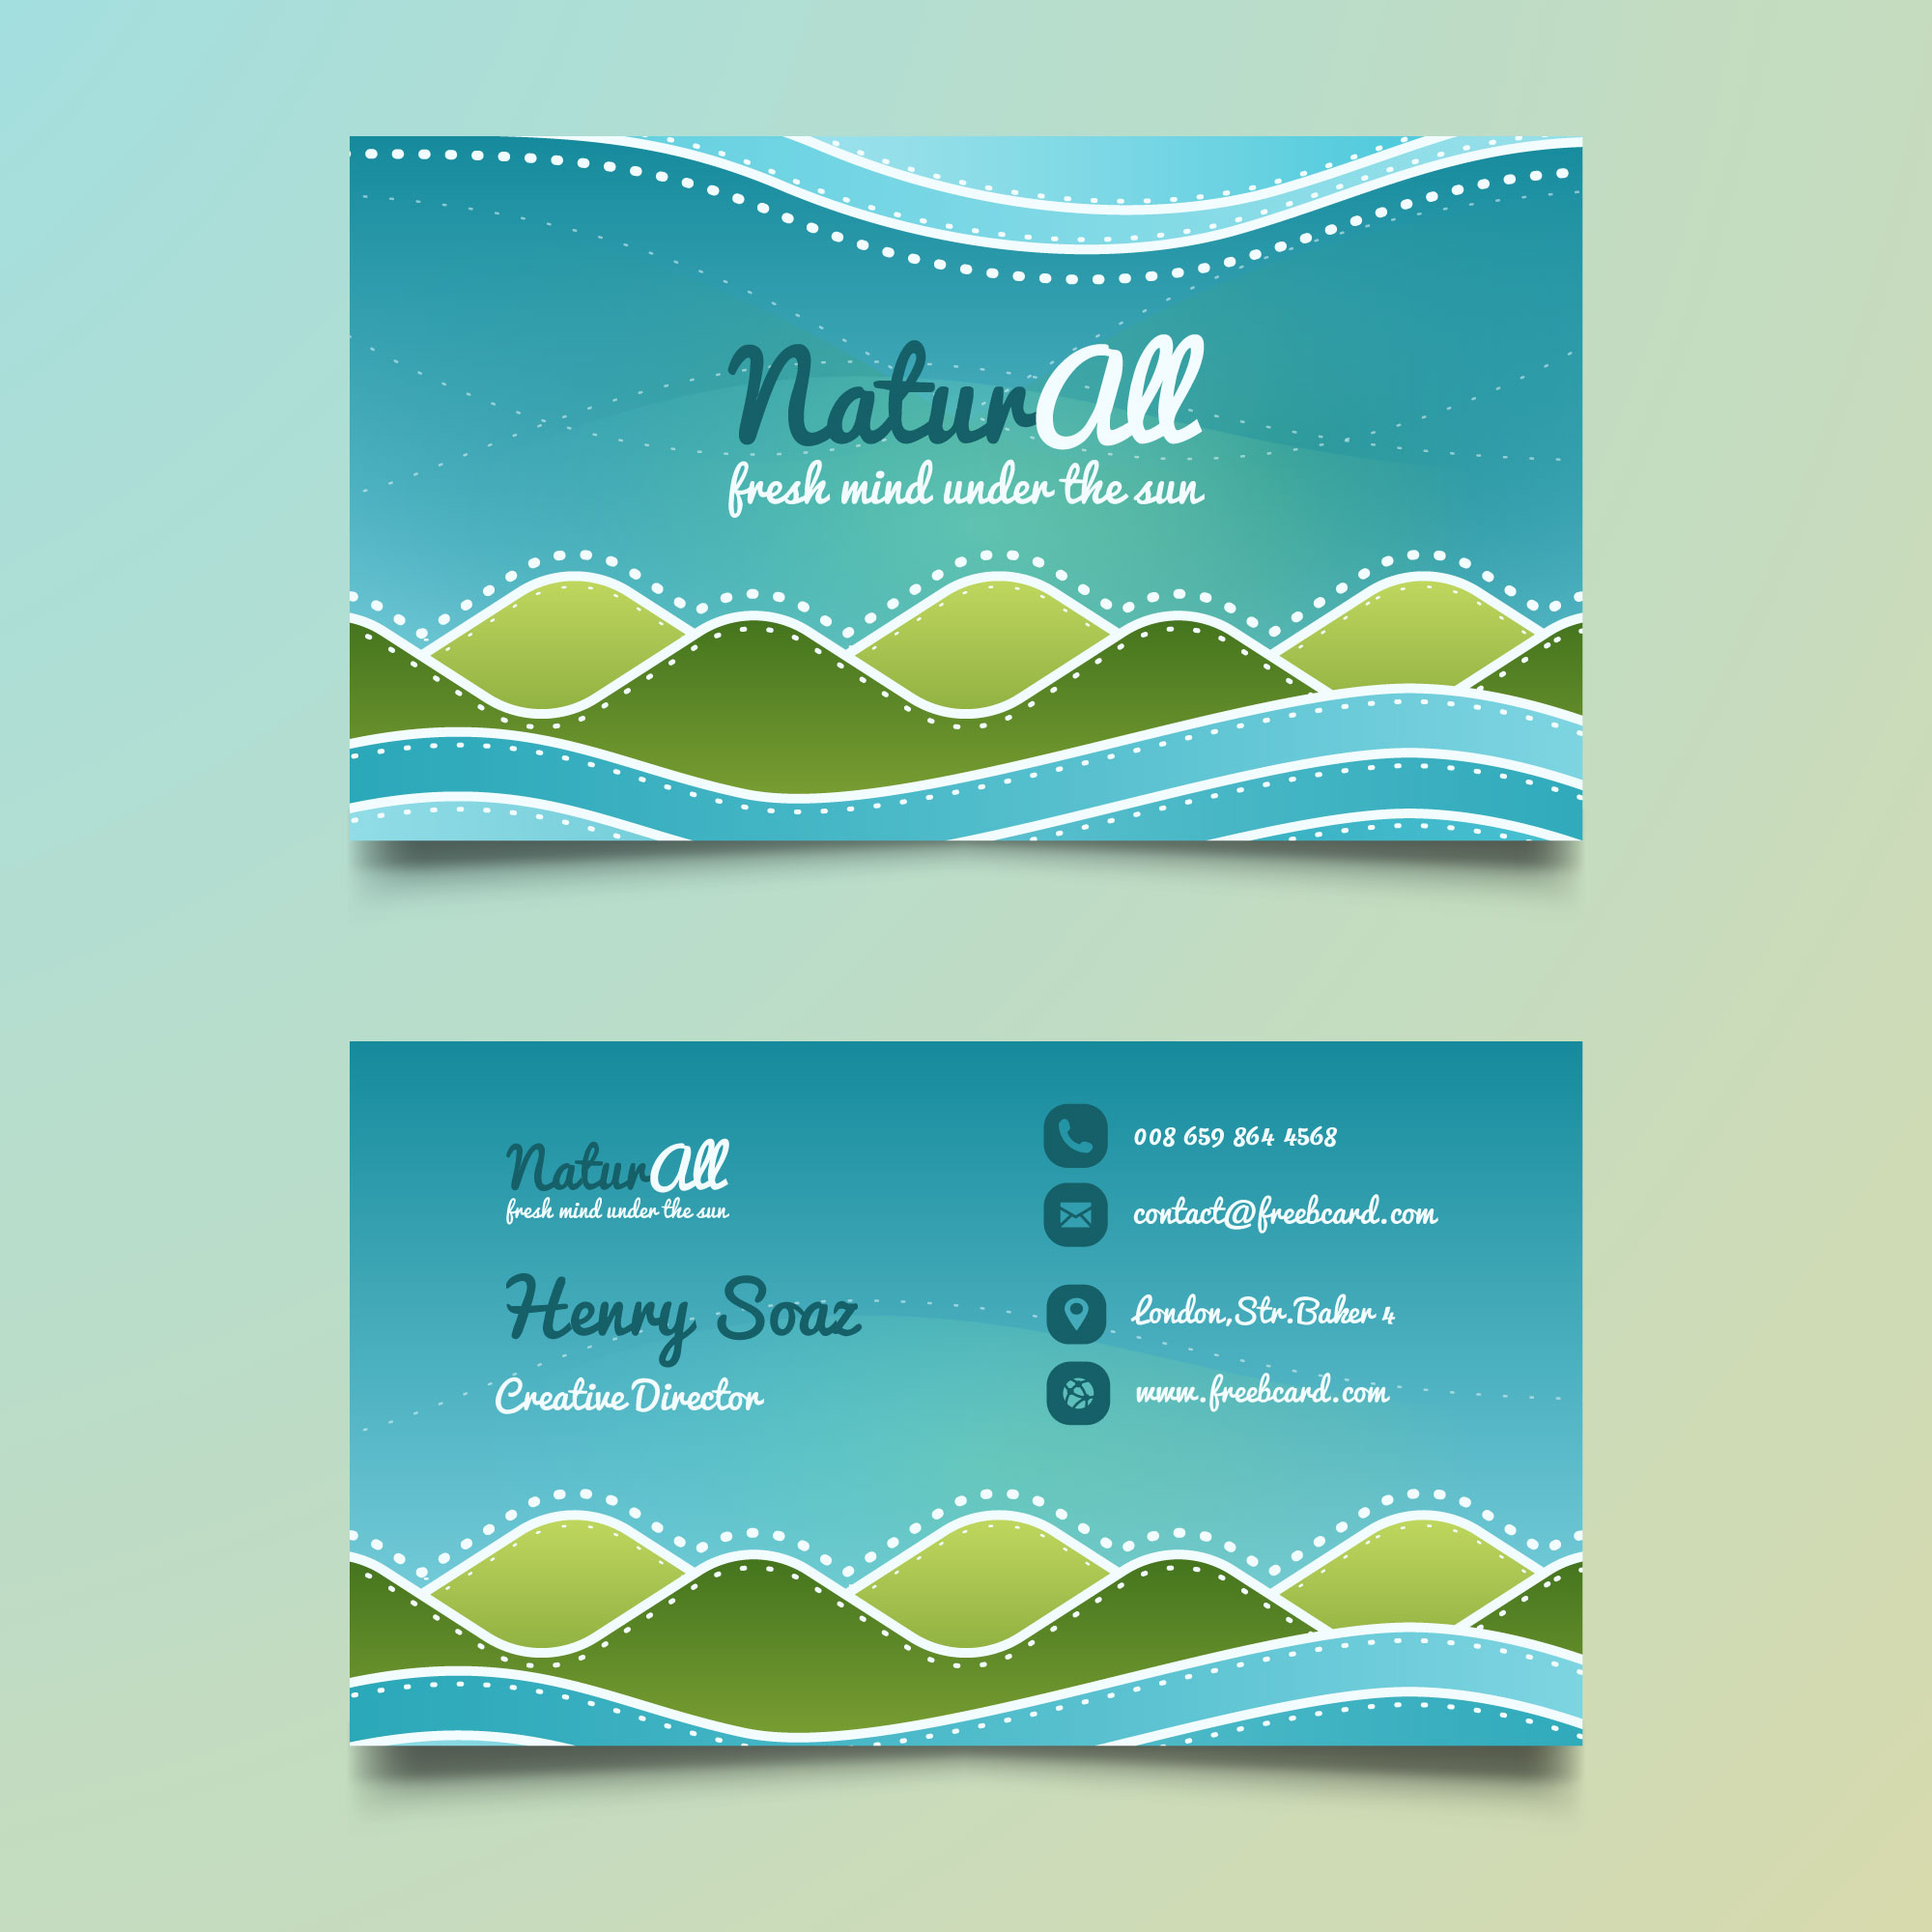 Corporate card with elements of nature